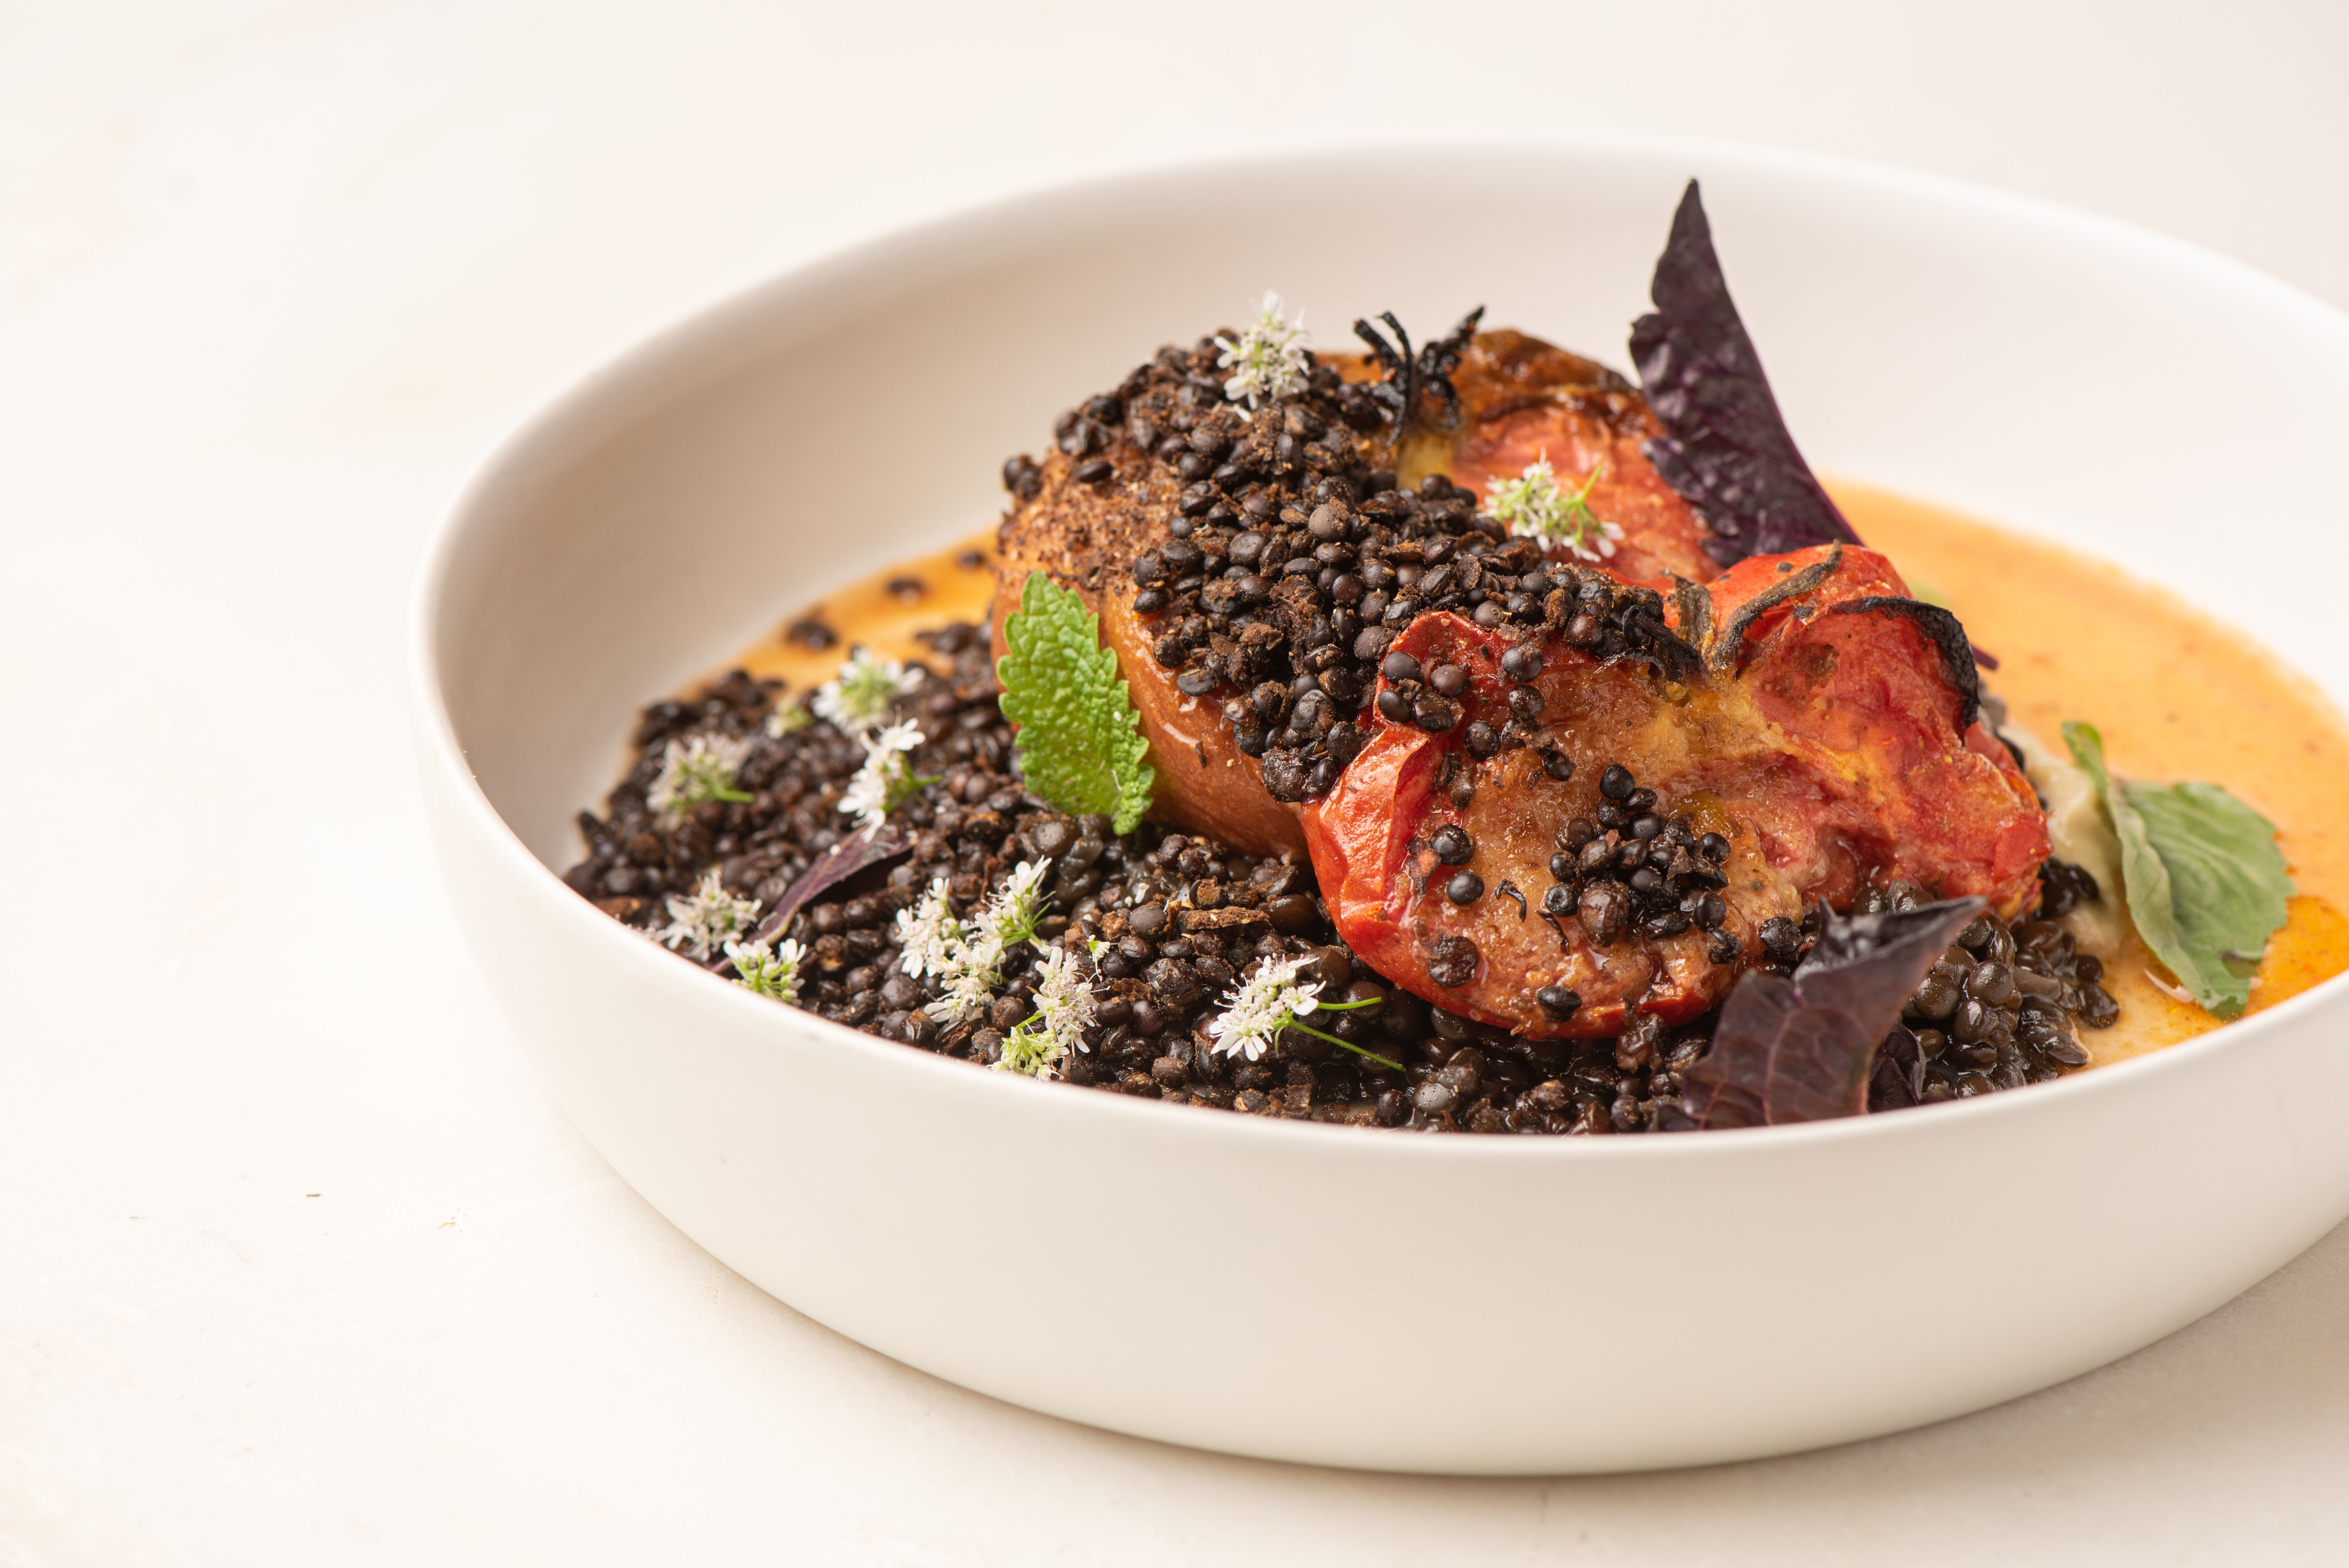 Charred tomatoes with lentils at Varro in Venice.